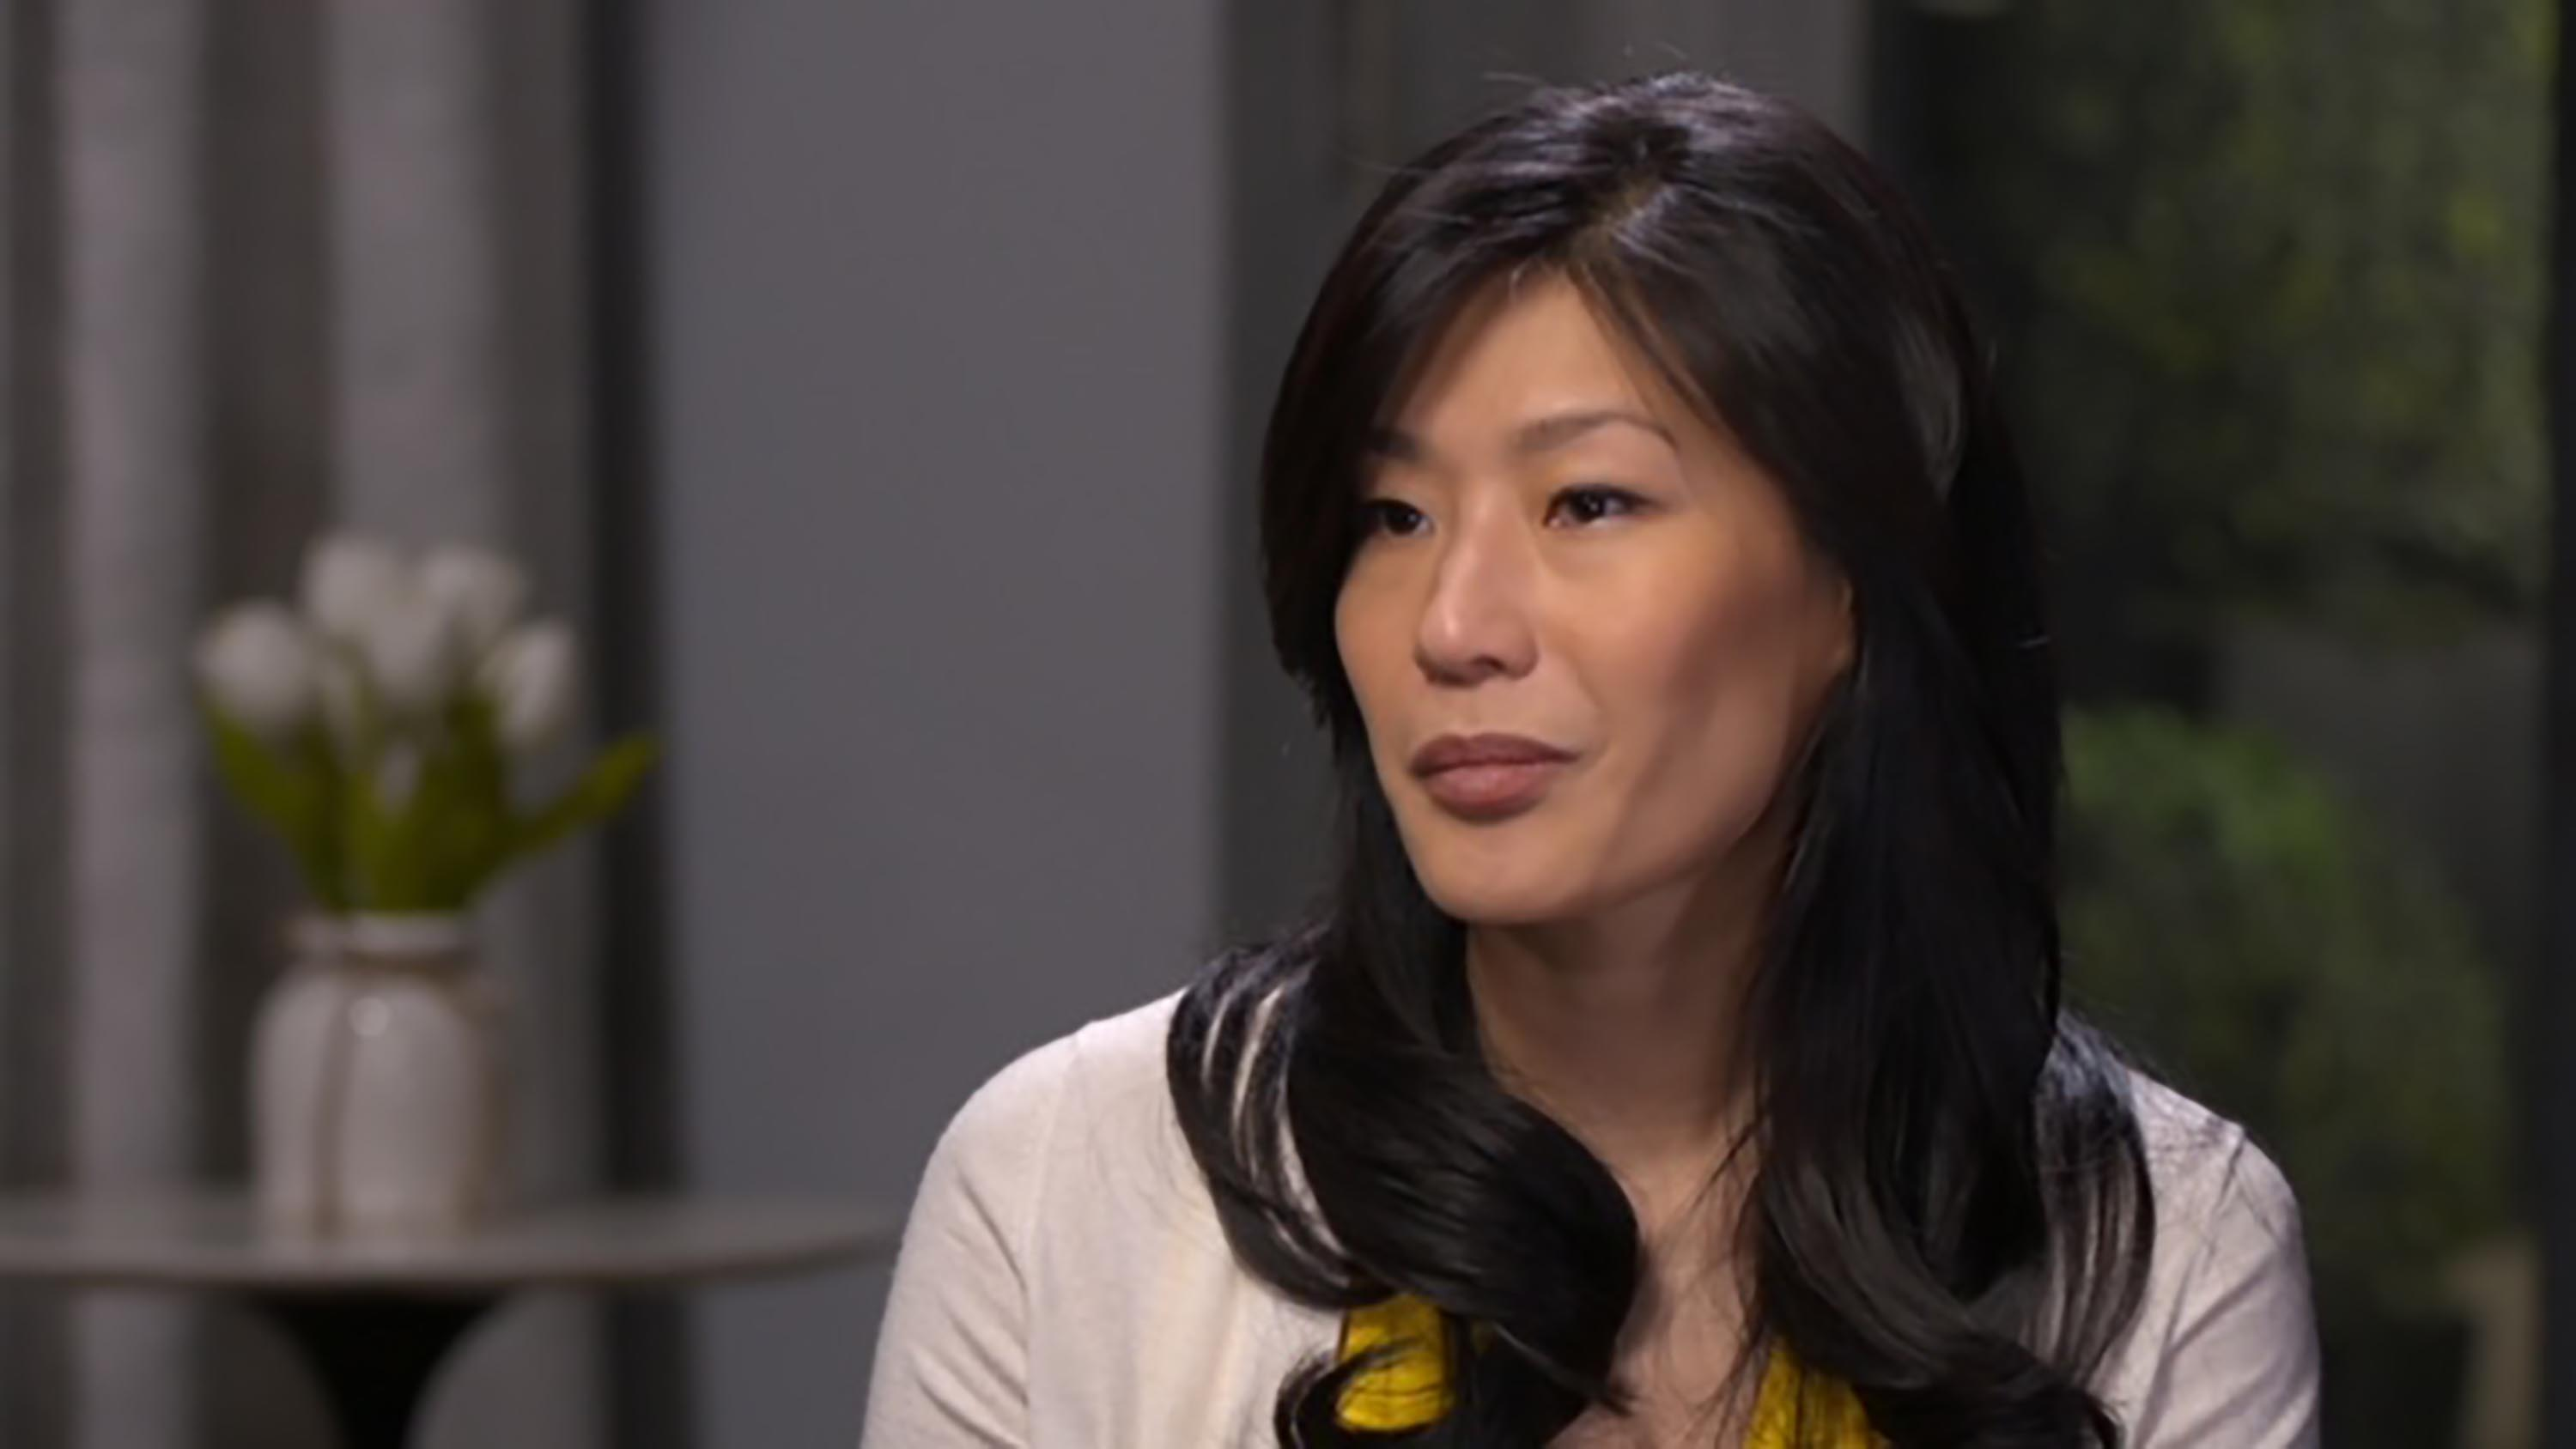 Exclusive: Evelyn Yang reveals she was sexually assaulted by her OB-GYN while pregnant